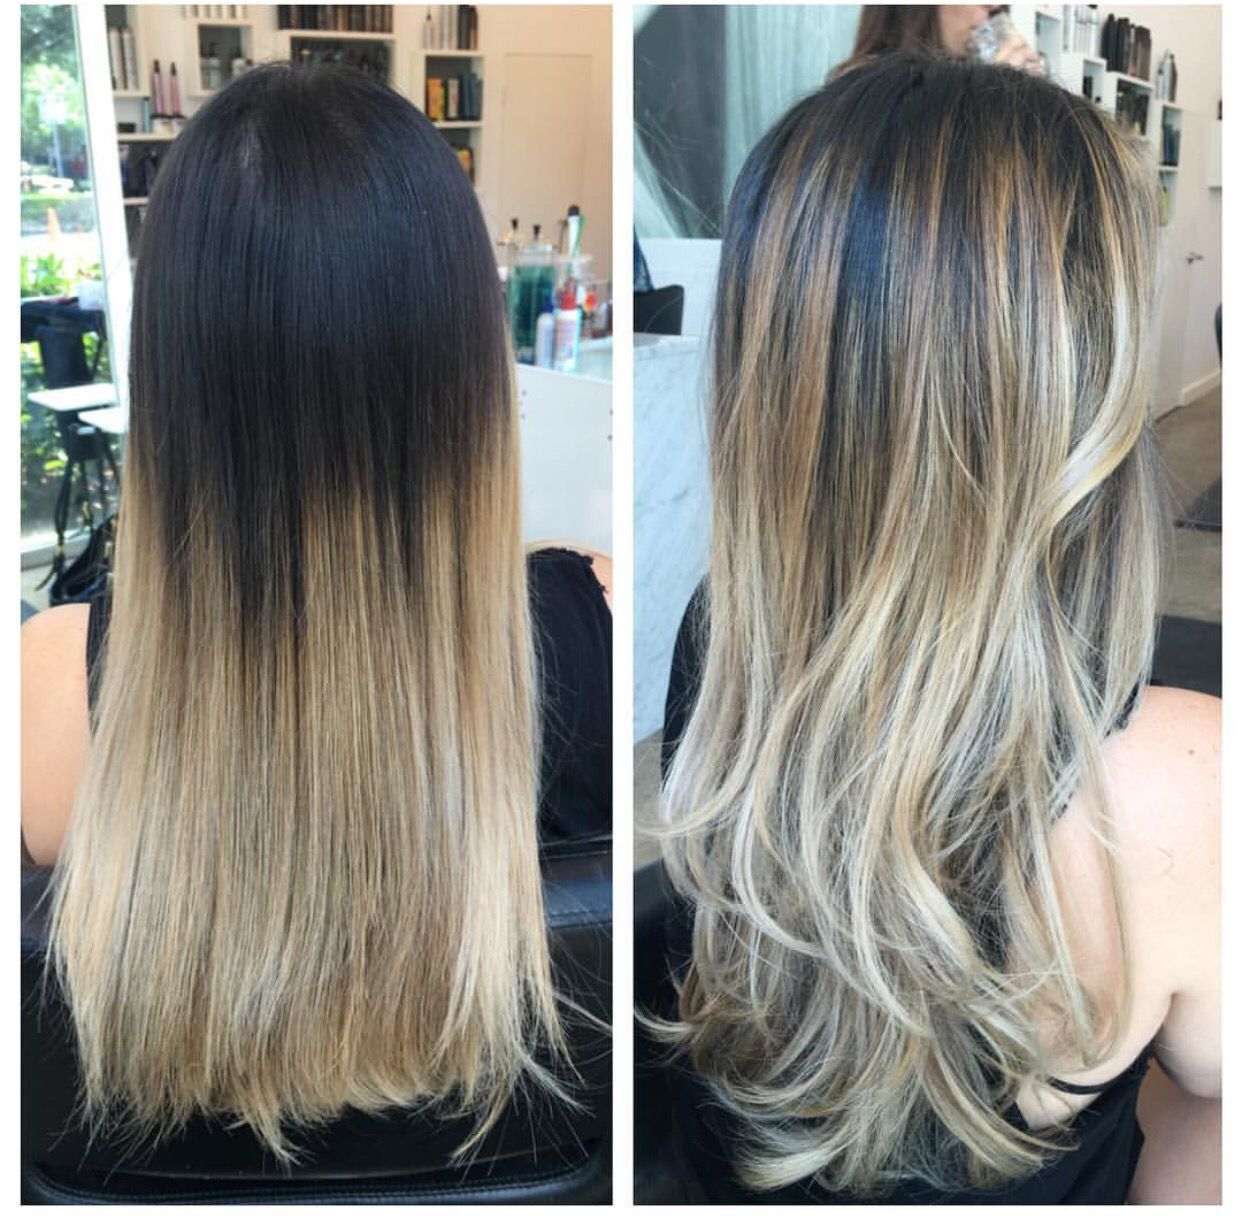 Dark brown to blonde ombr and balayage ombre balayage for Balayage braun blond